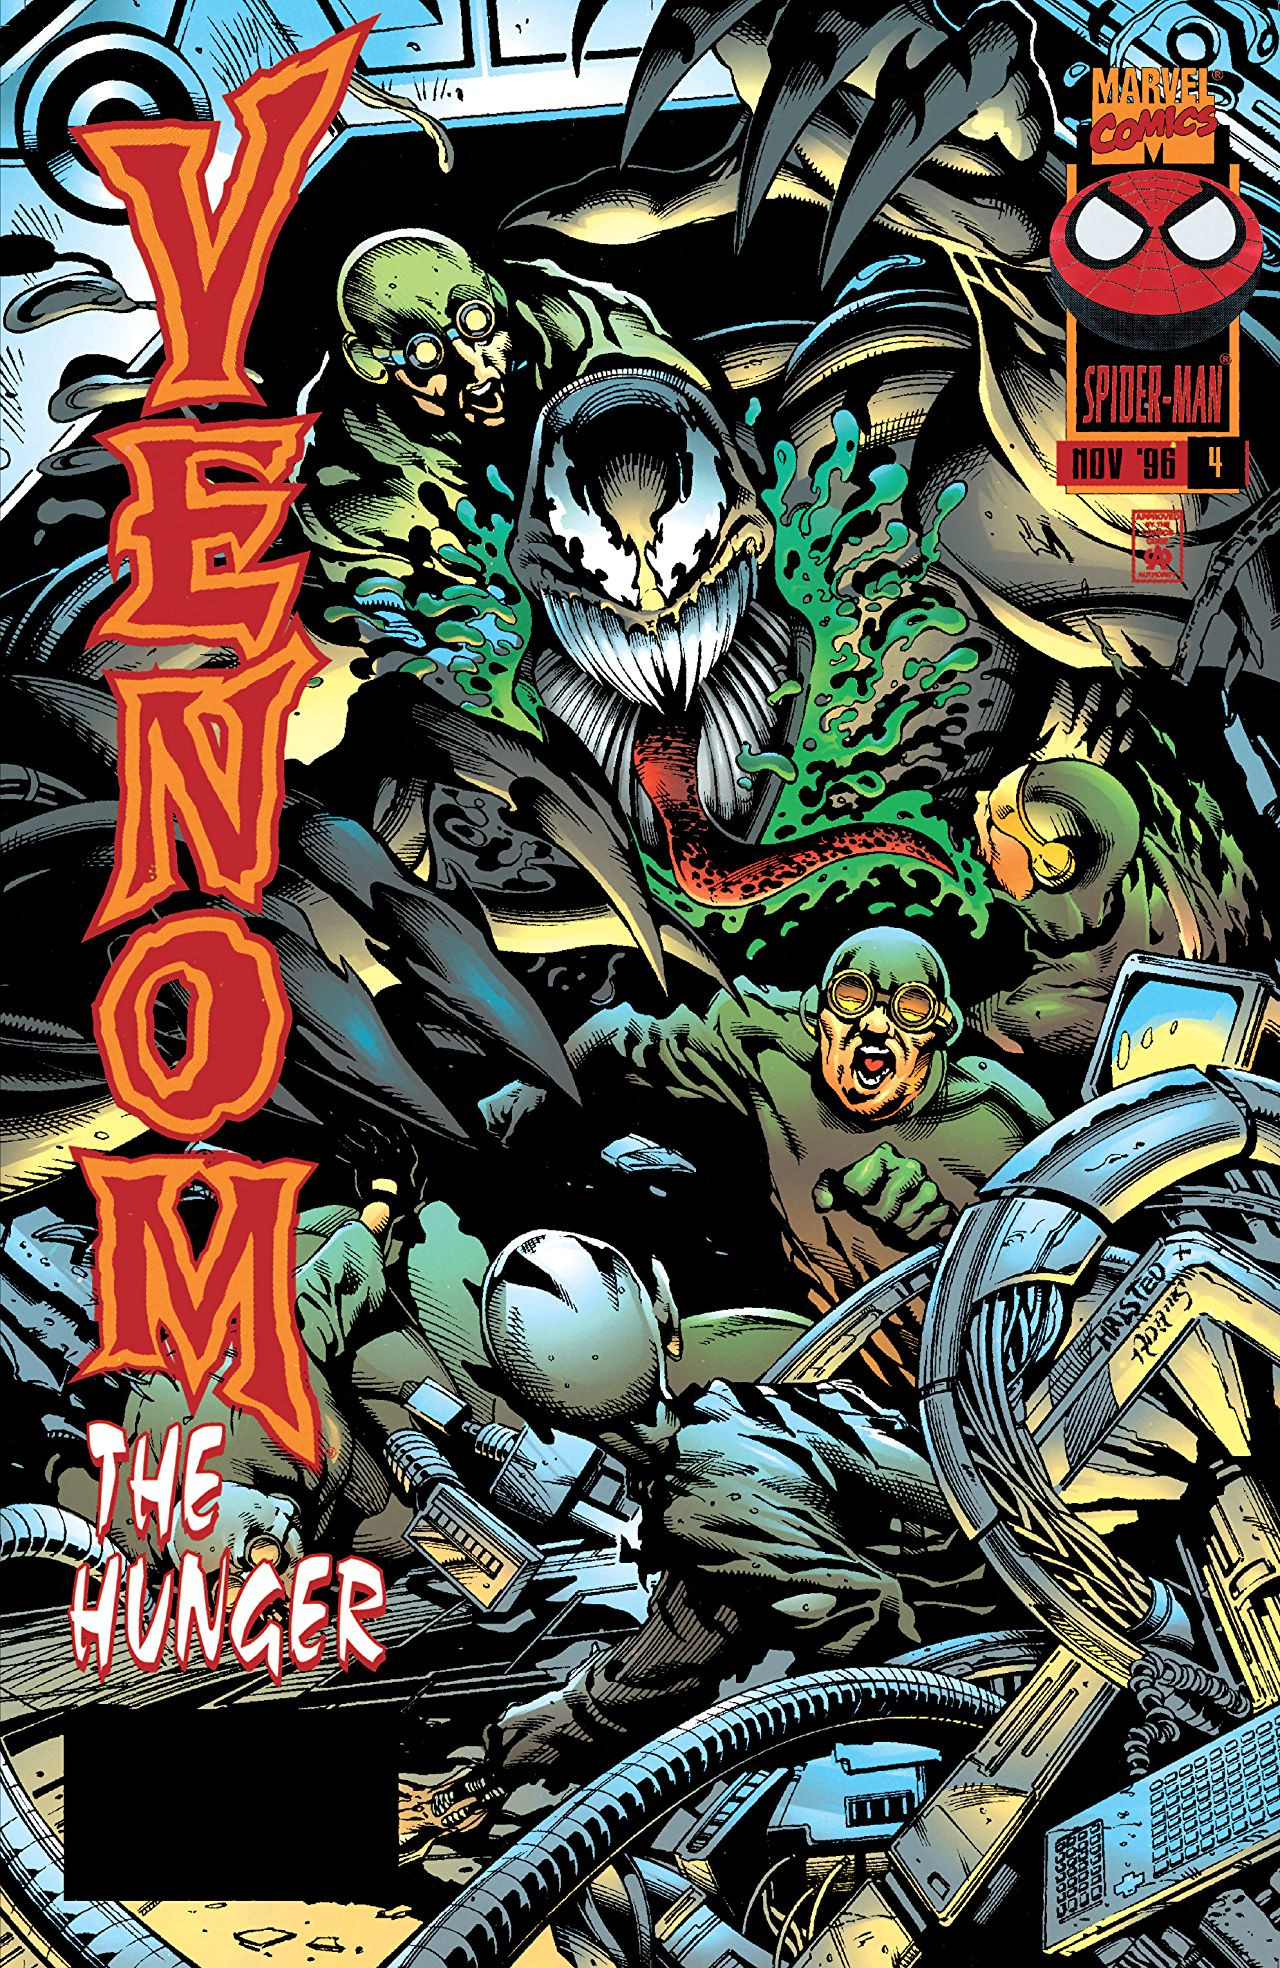 Venom: The Hunger Vol 1 4